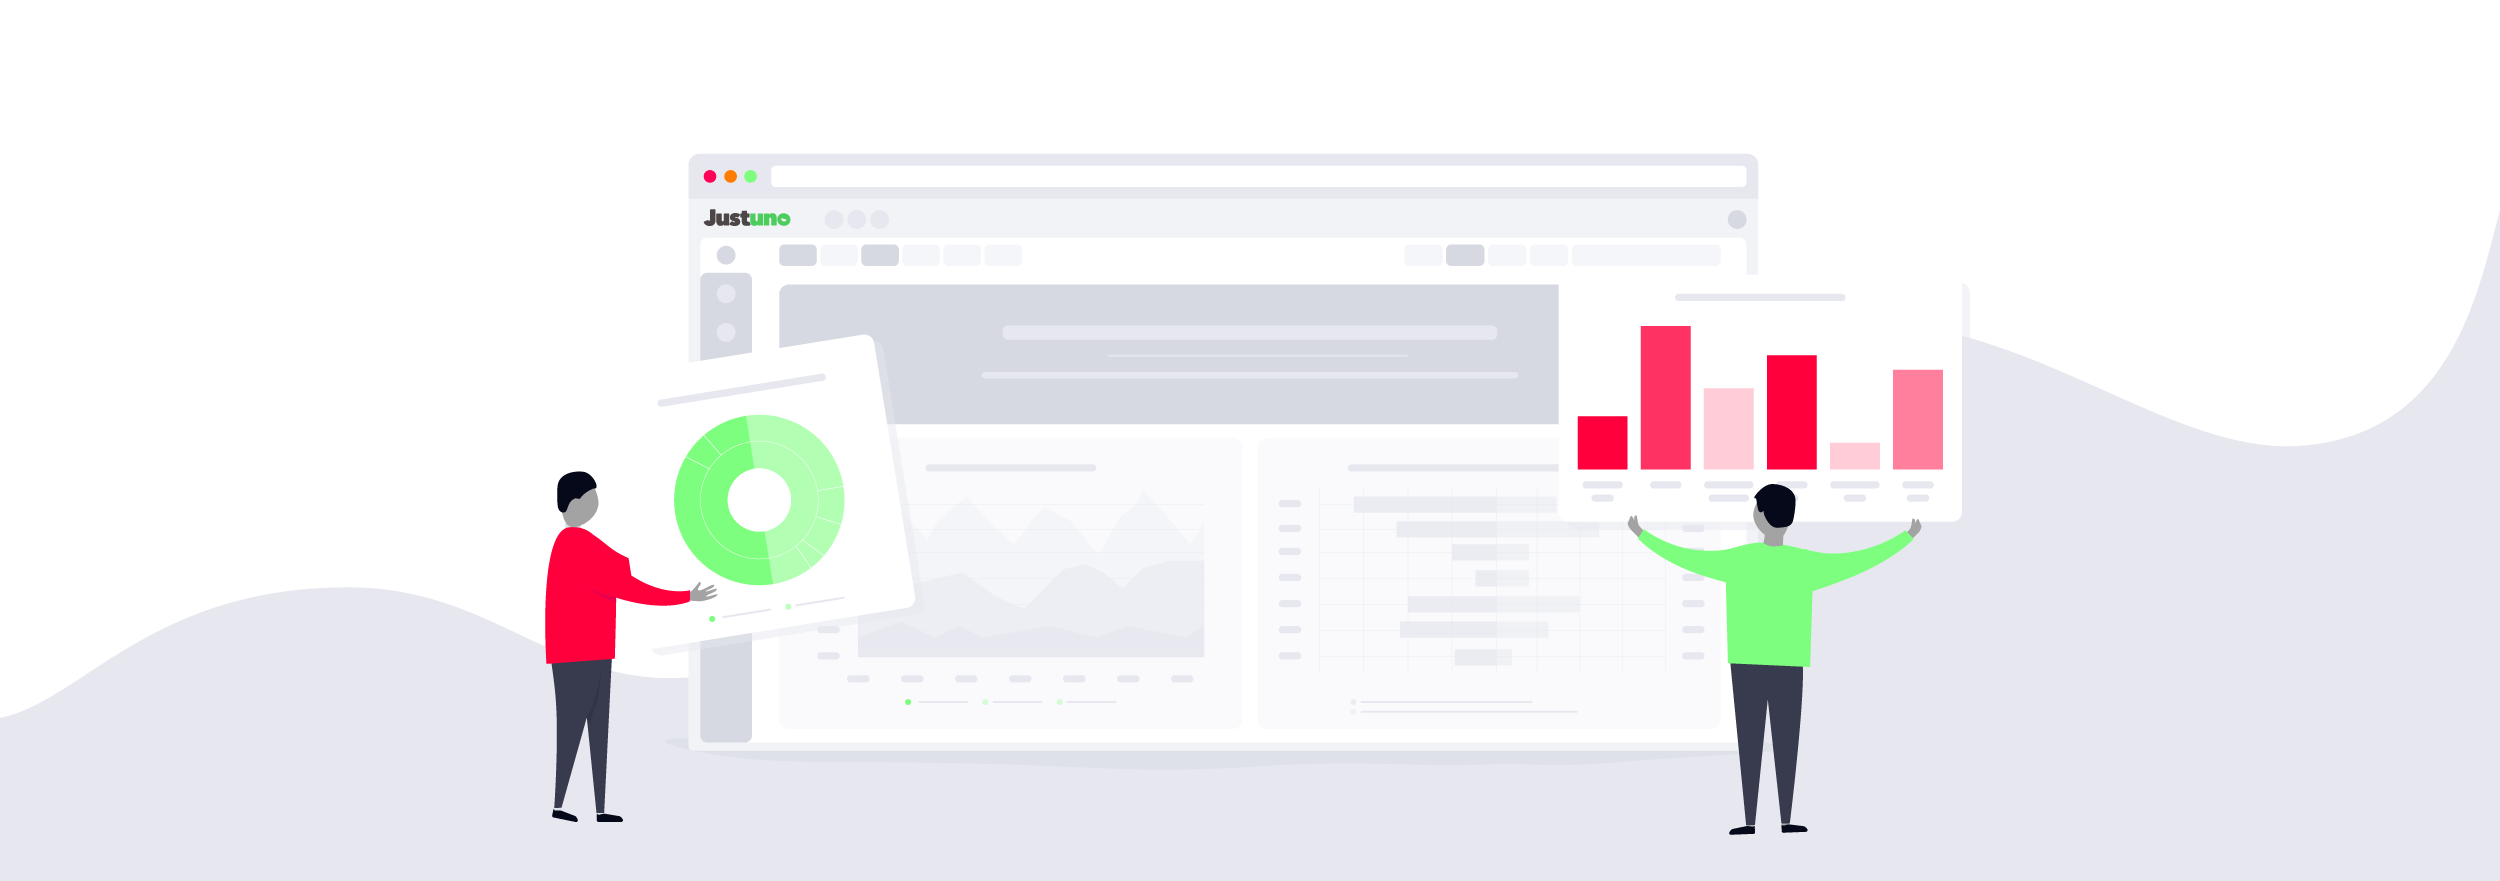 Justuno Review: The Popup Builder We Love For Personalized CRO